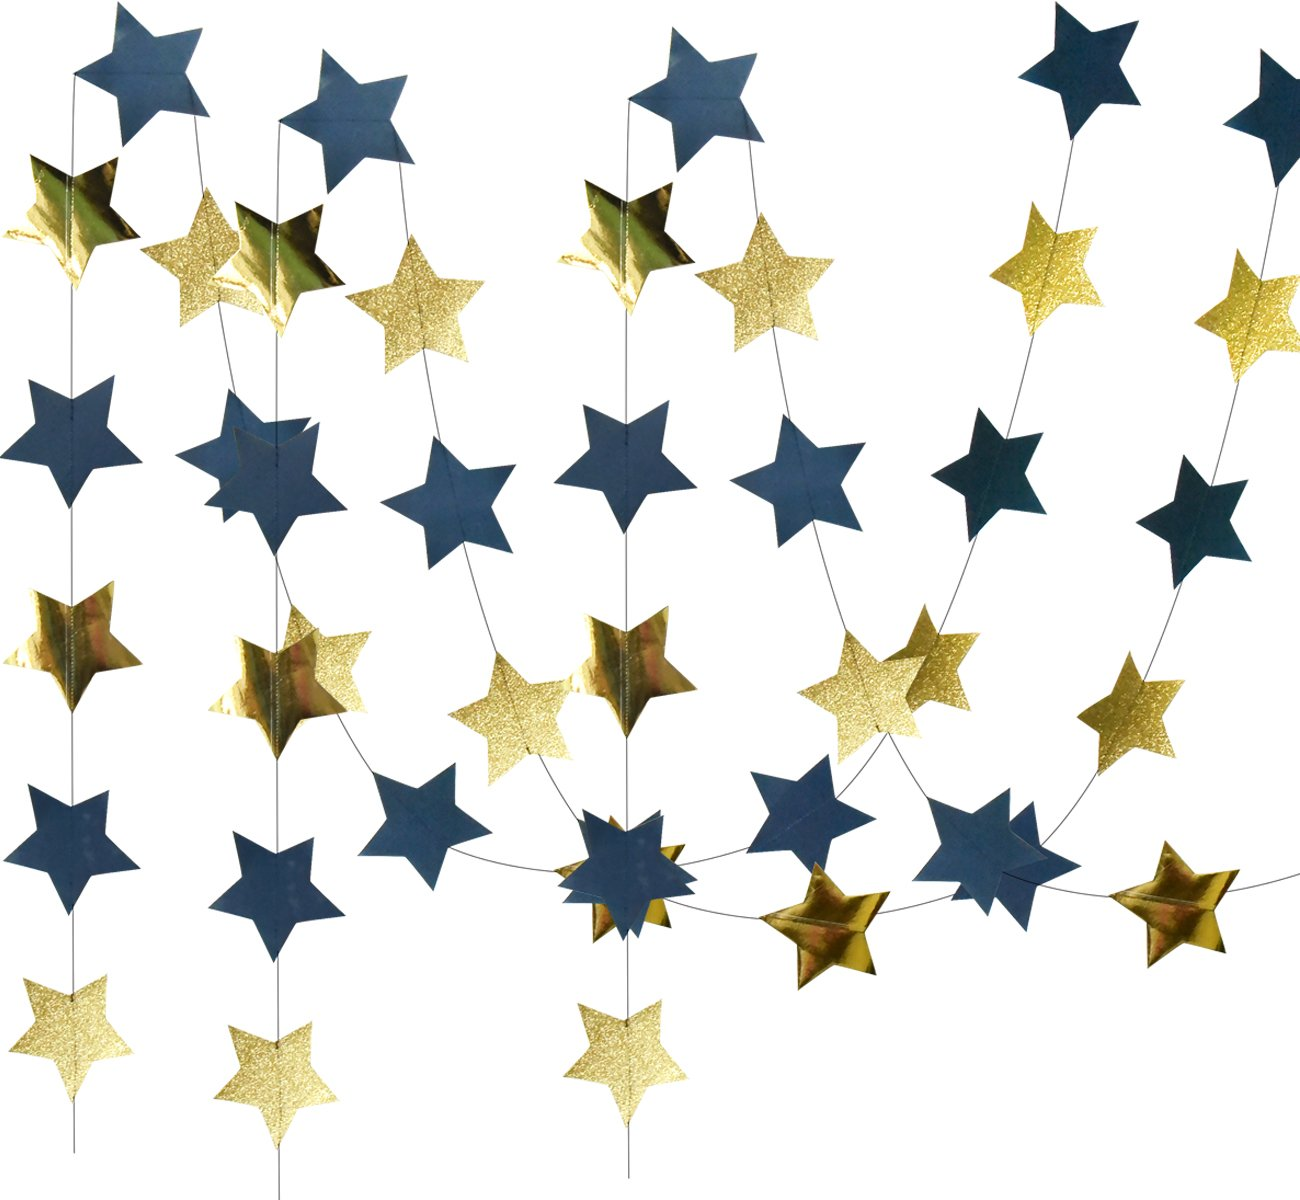 Outer Space Decorations Birthday Party Decorations 2pcs Navy Blue Glitter Gold Paper Star Garlands Star String for Baby Shower Decorations